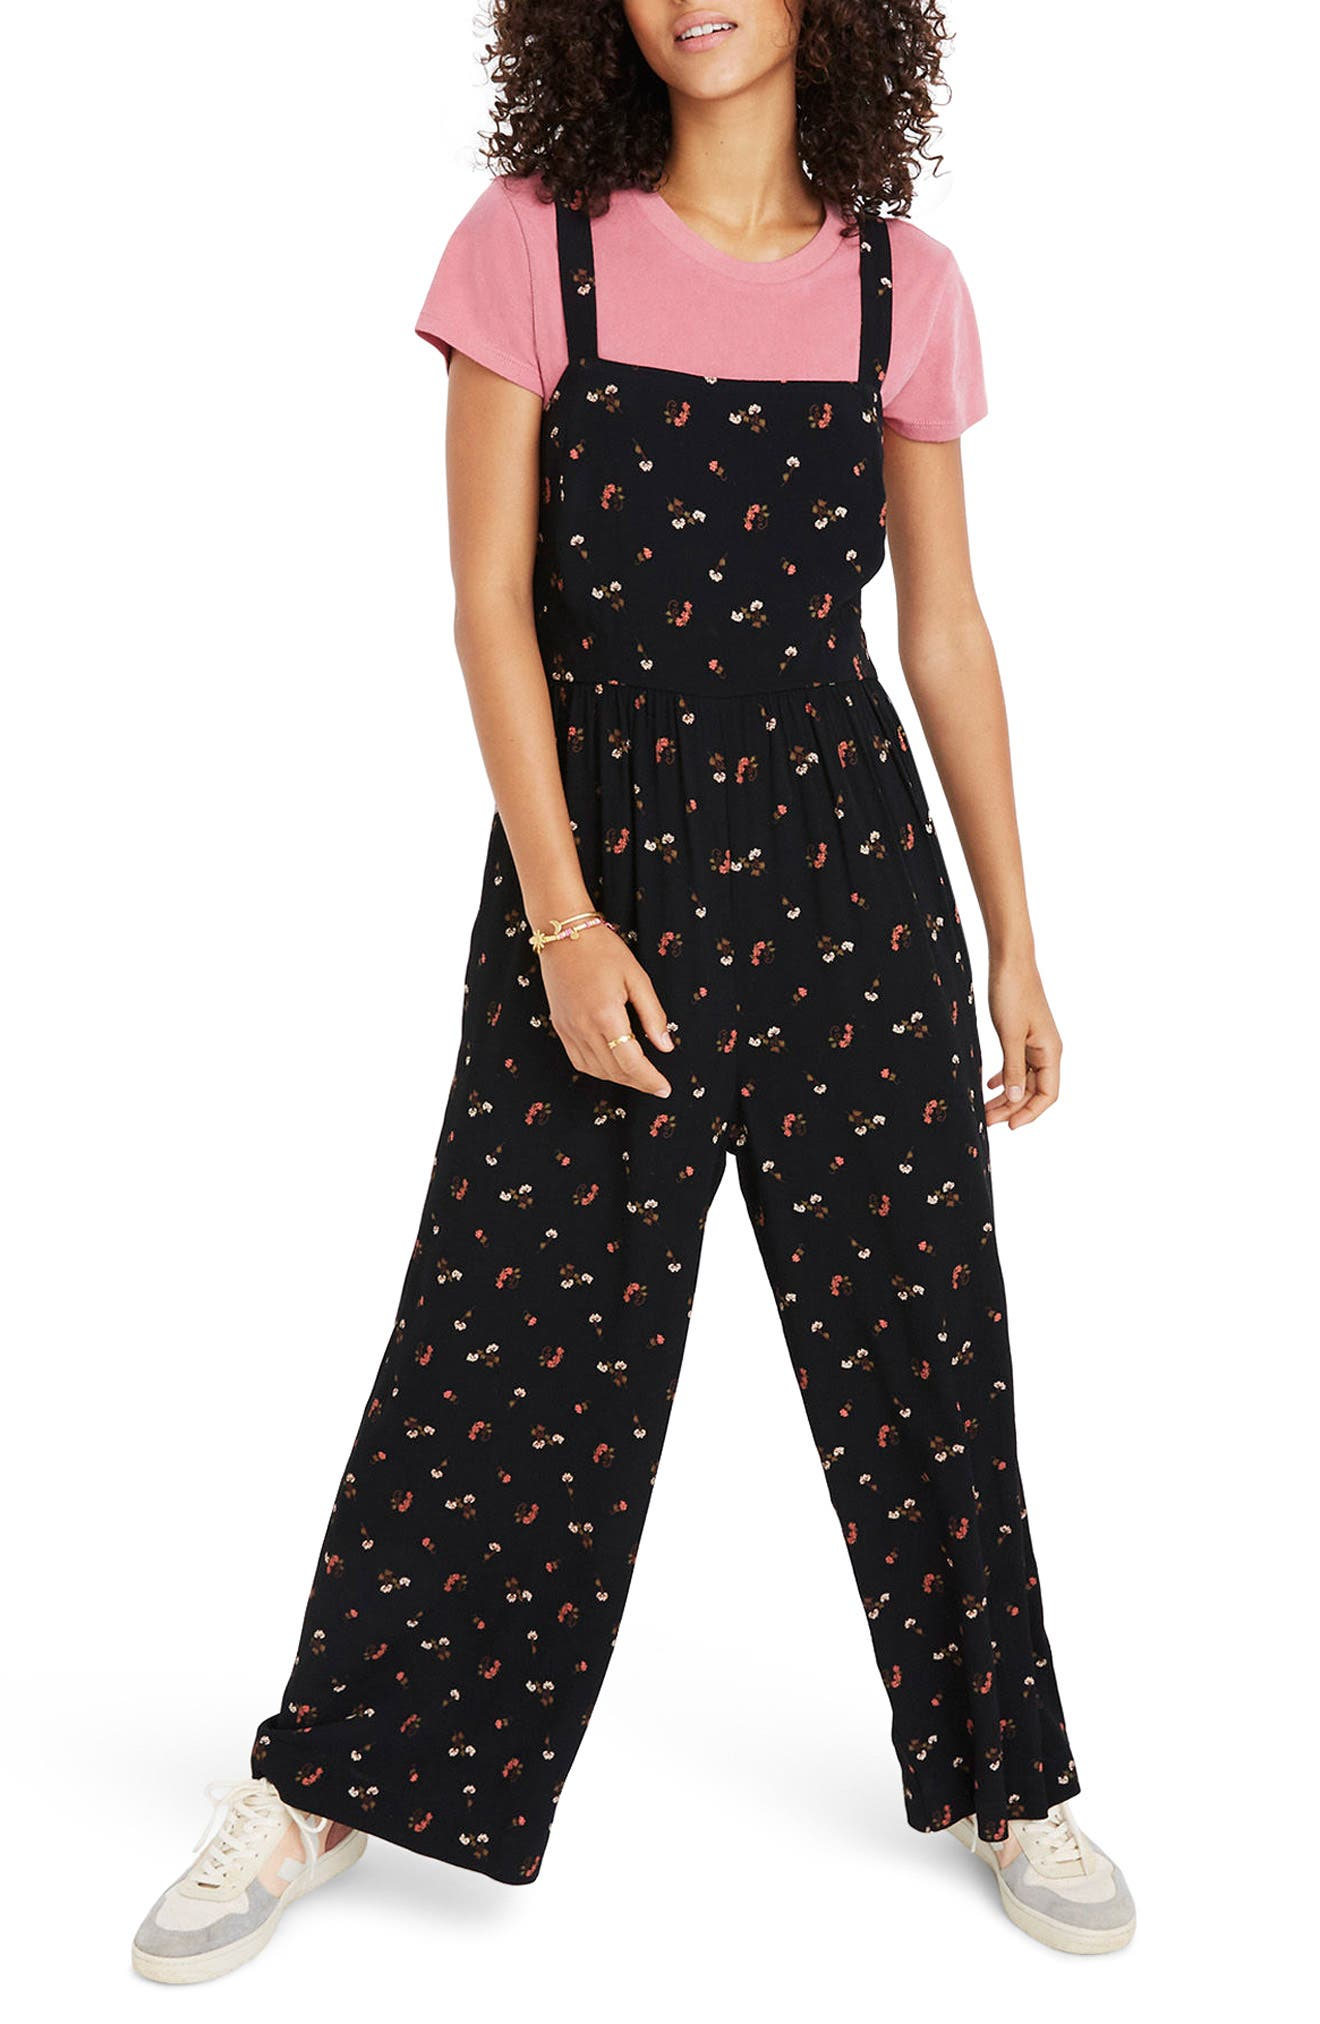 MADEWELL,                             Flower Toss Smocked Crop Jumpsuit,                             Main thumbnail 1, color,                             009